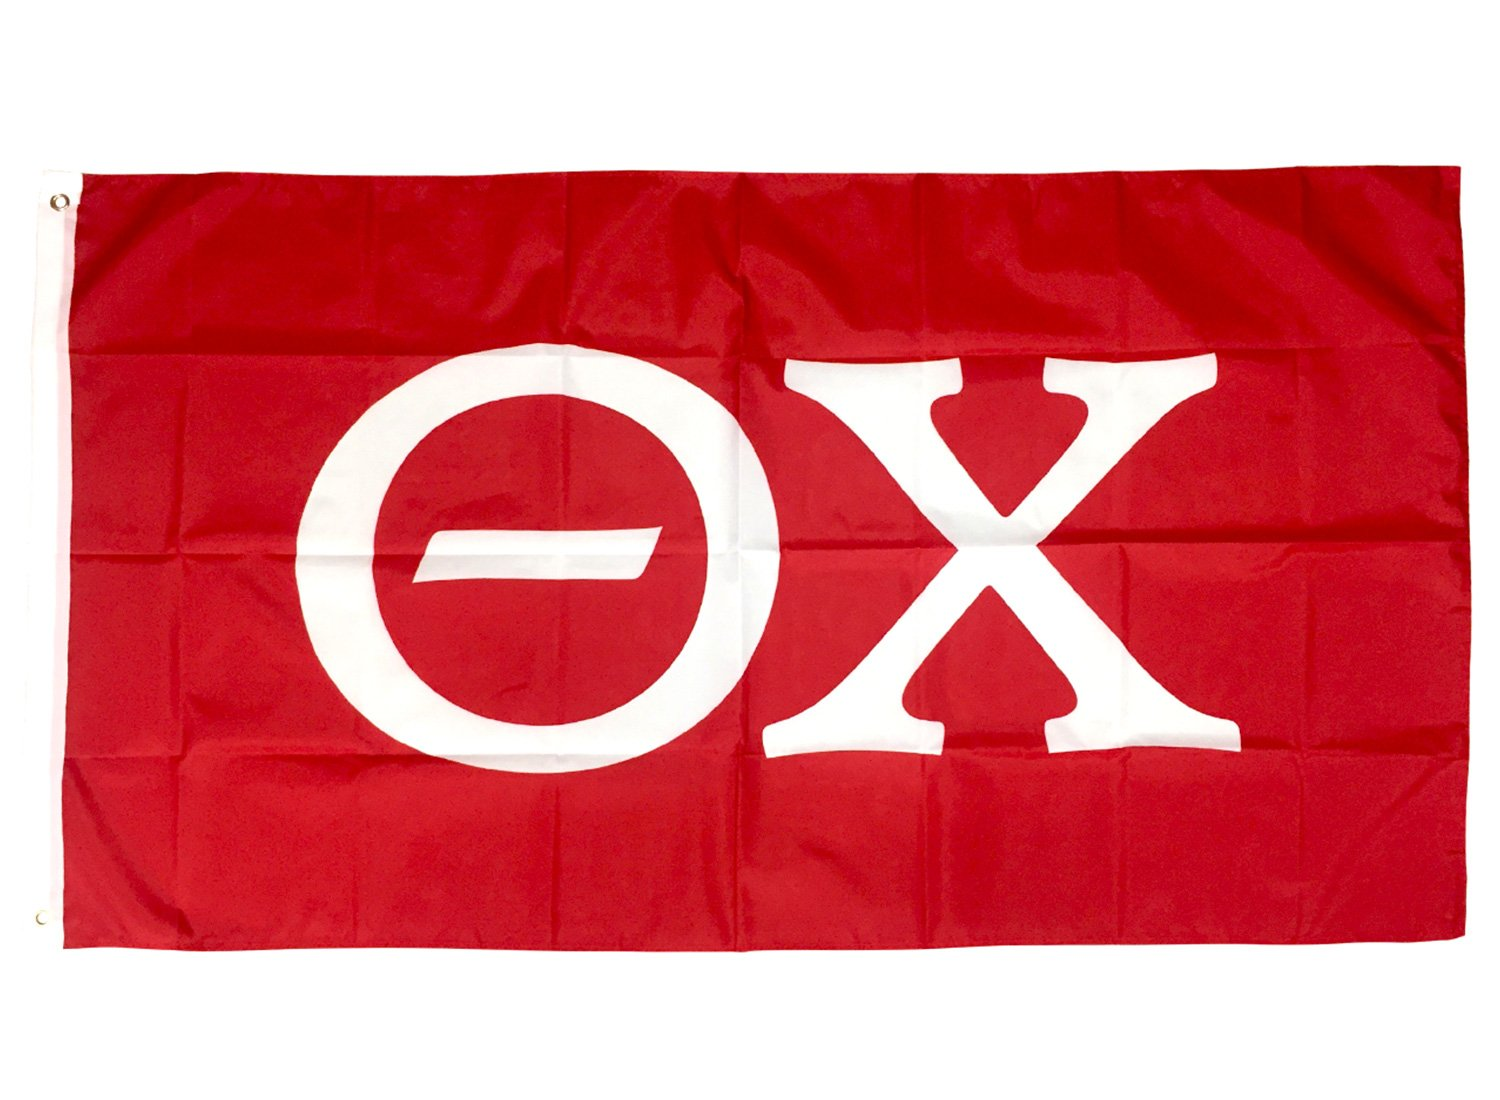 Theta Chi Letter Fraternity Flag Greek Letter Use as a Banner 3 x 5 Feet Sign Decor T Chi by Desert Cactus